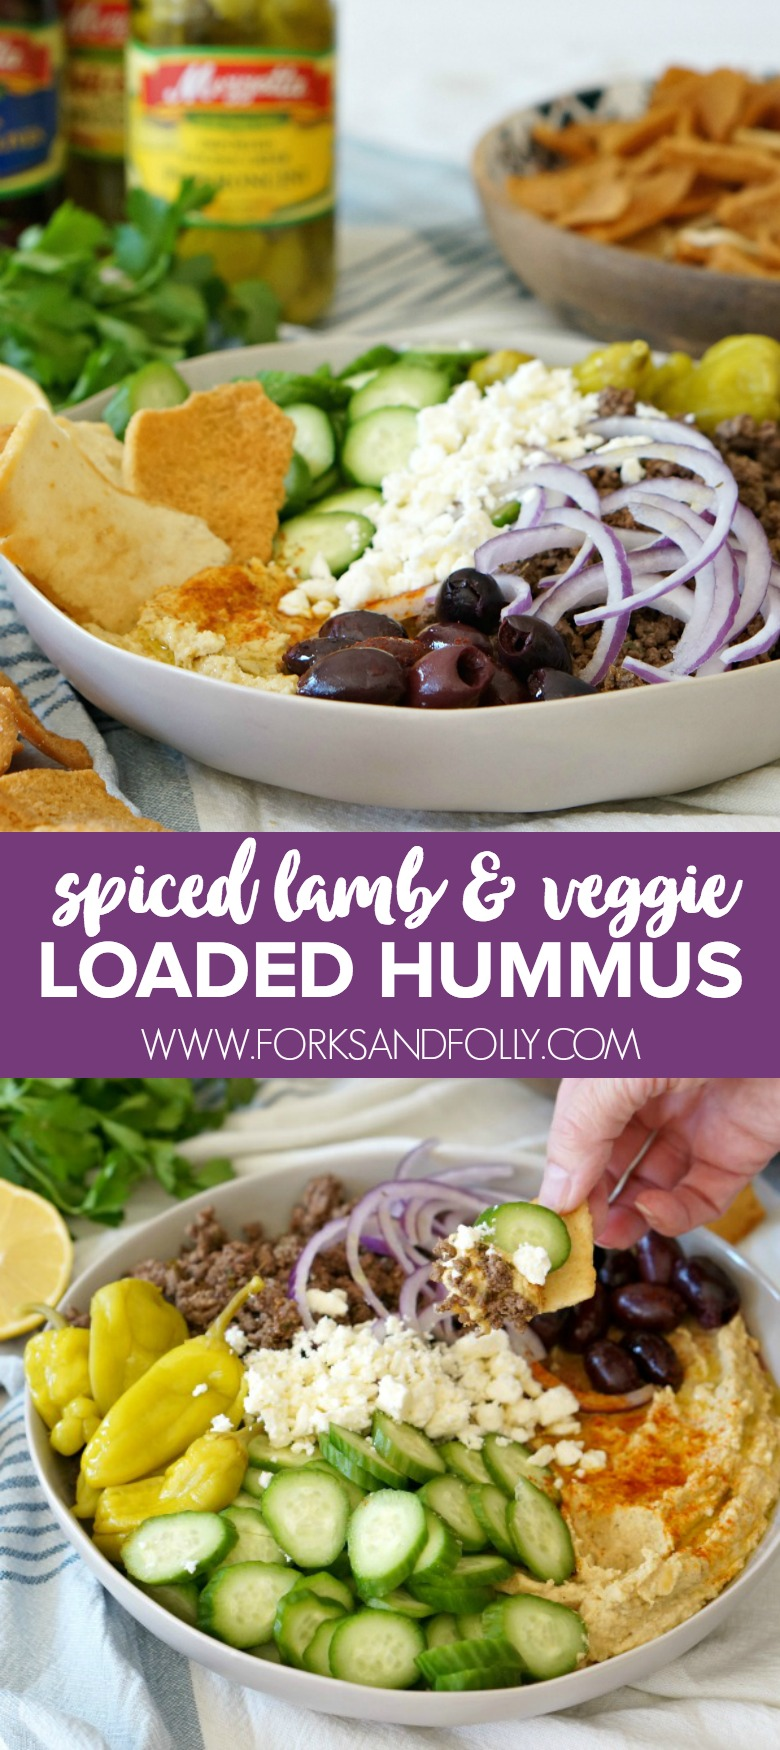 Loaded Hummus with Spiced Lamb and Veggies is the Game Day appetizer you need to serve this year. Serve it with veggies or pita chips for a winning flavor combo!